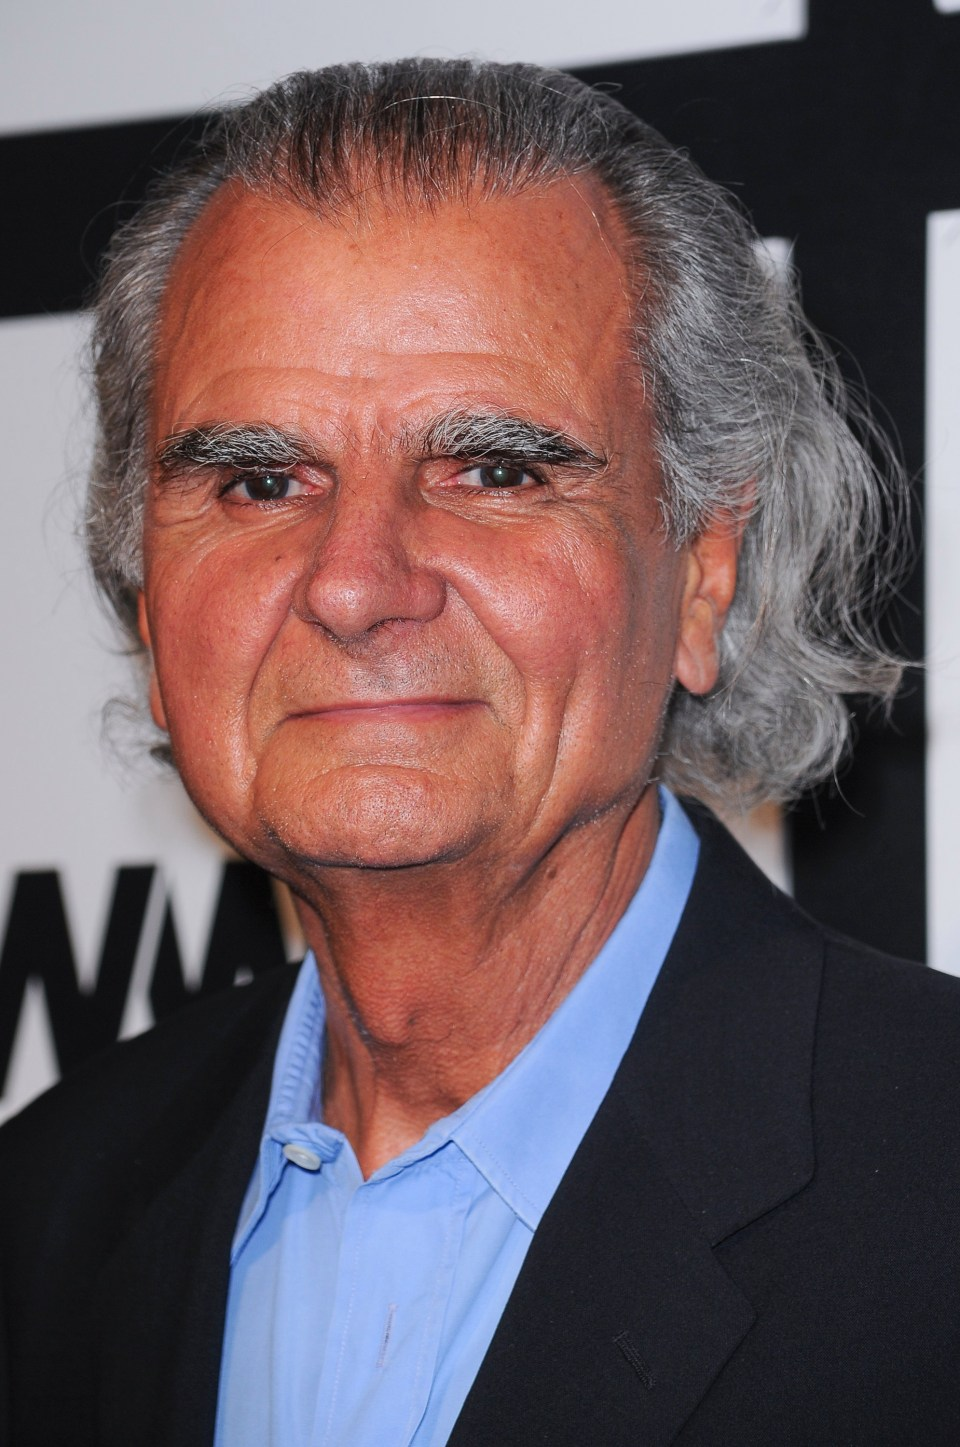 Multiple models accused photographer Patrick Demarchelier of sexual misconduct.